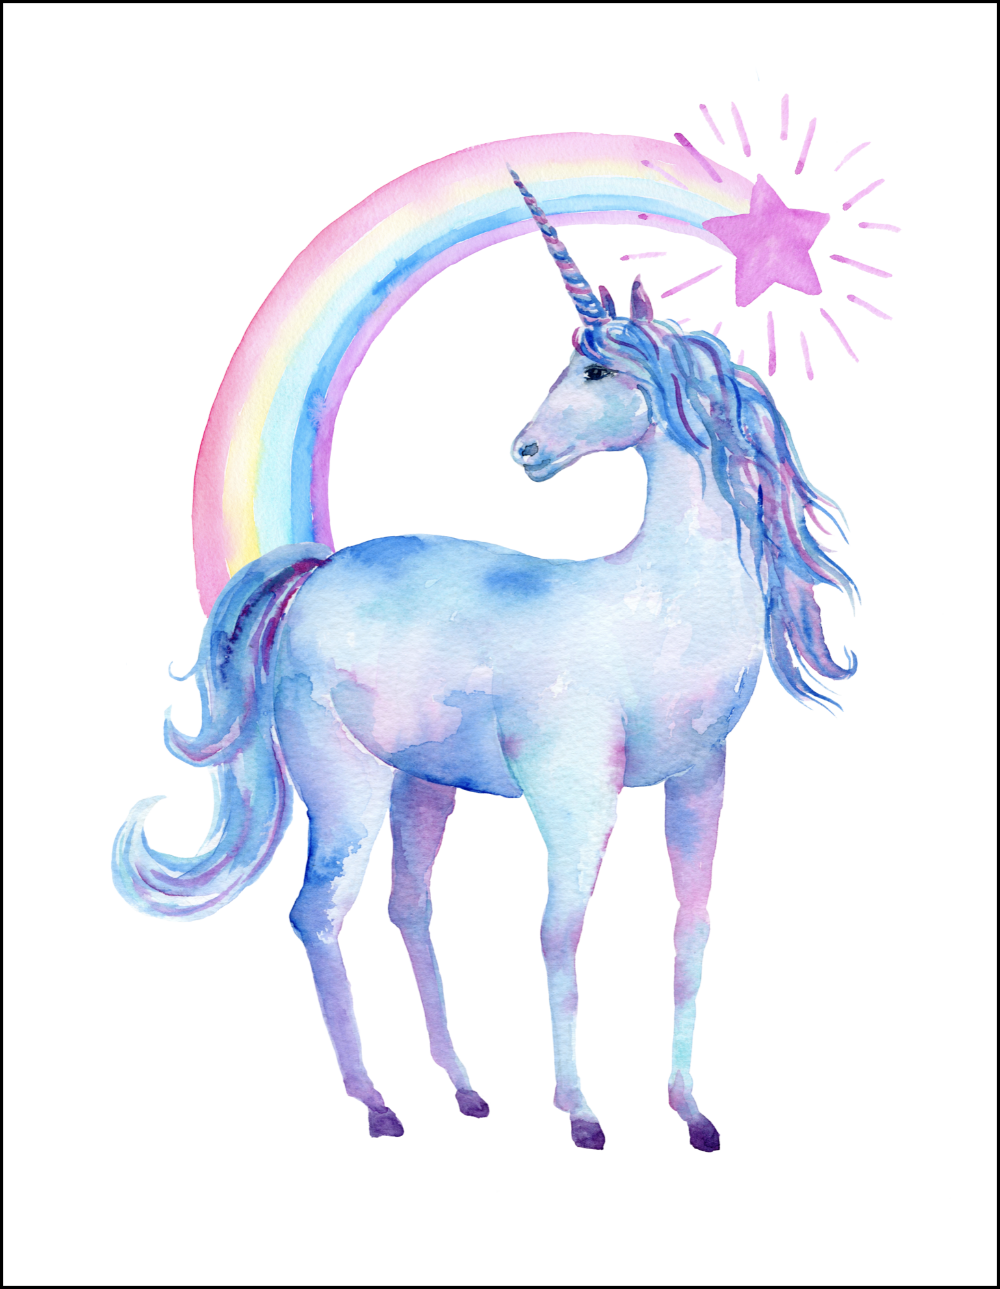 image regarding Free Printable Unicorn Pictures known as Totally free Printable Watercolor Unicorn Photographs Get together recommendations